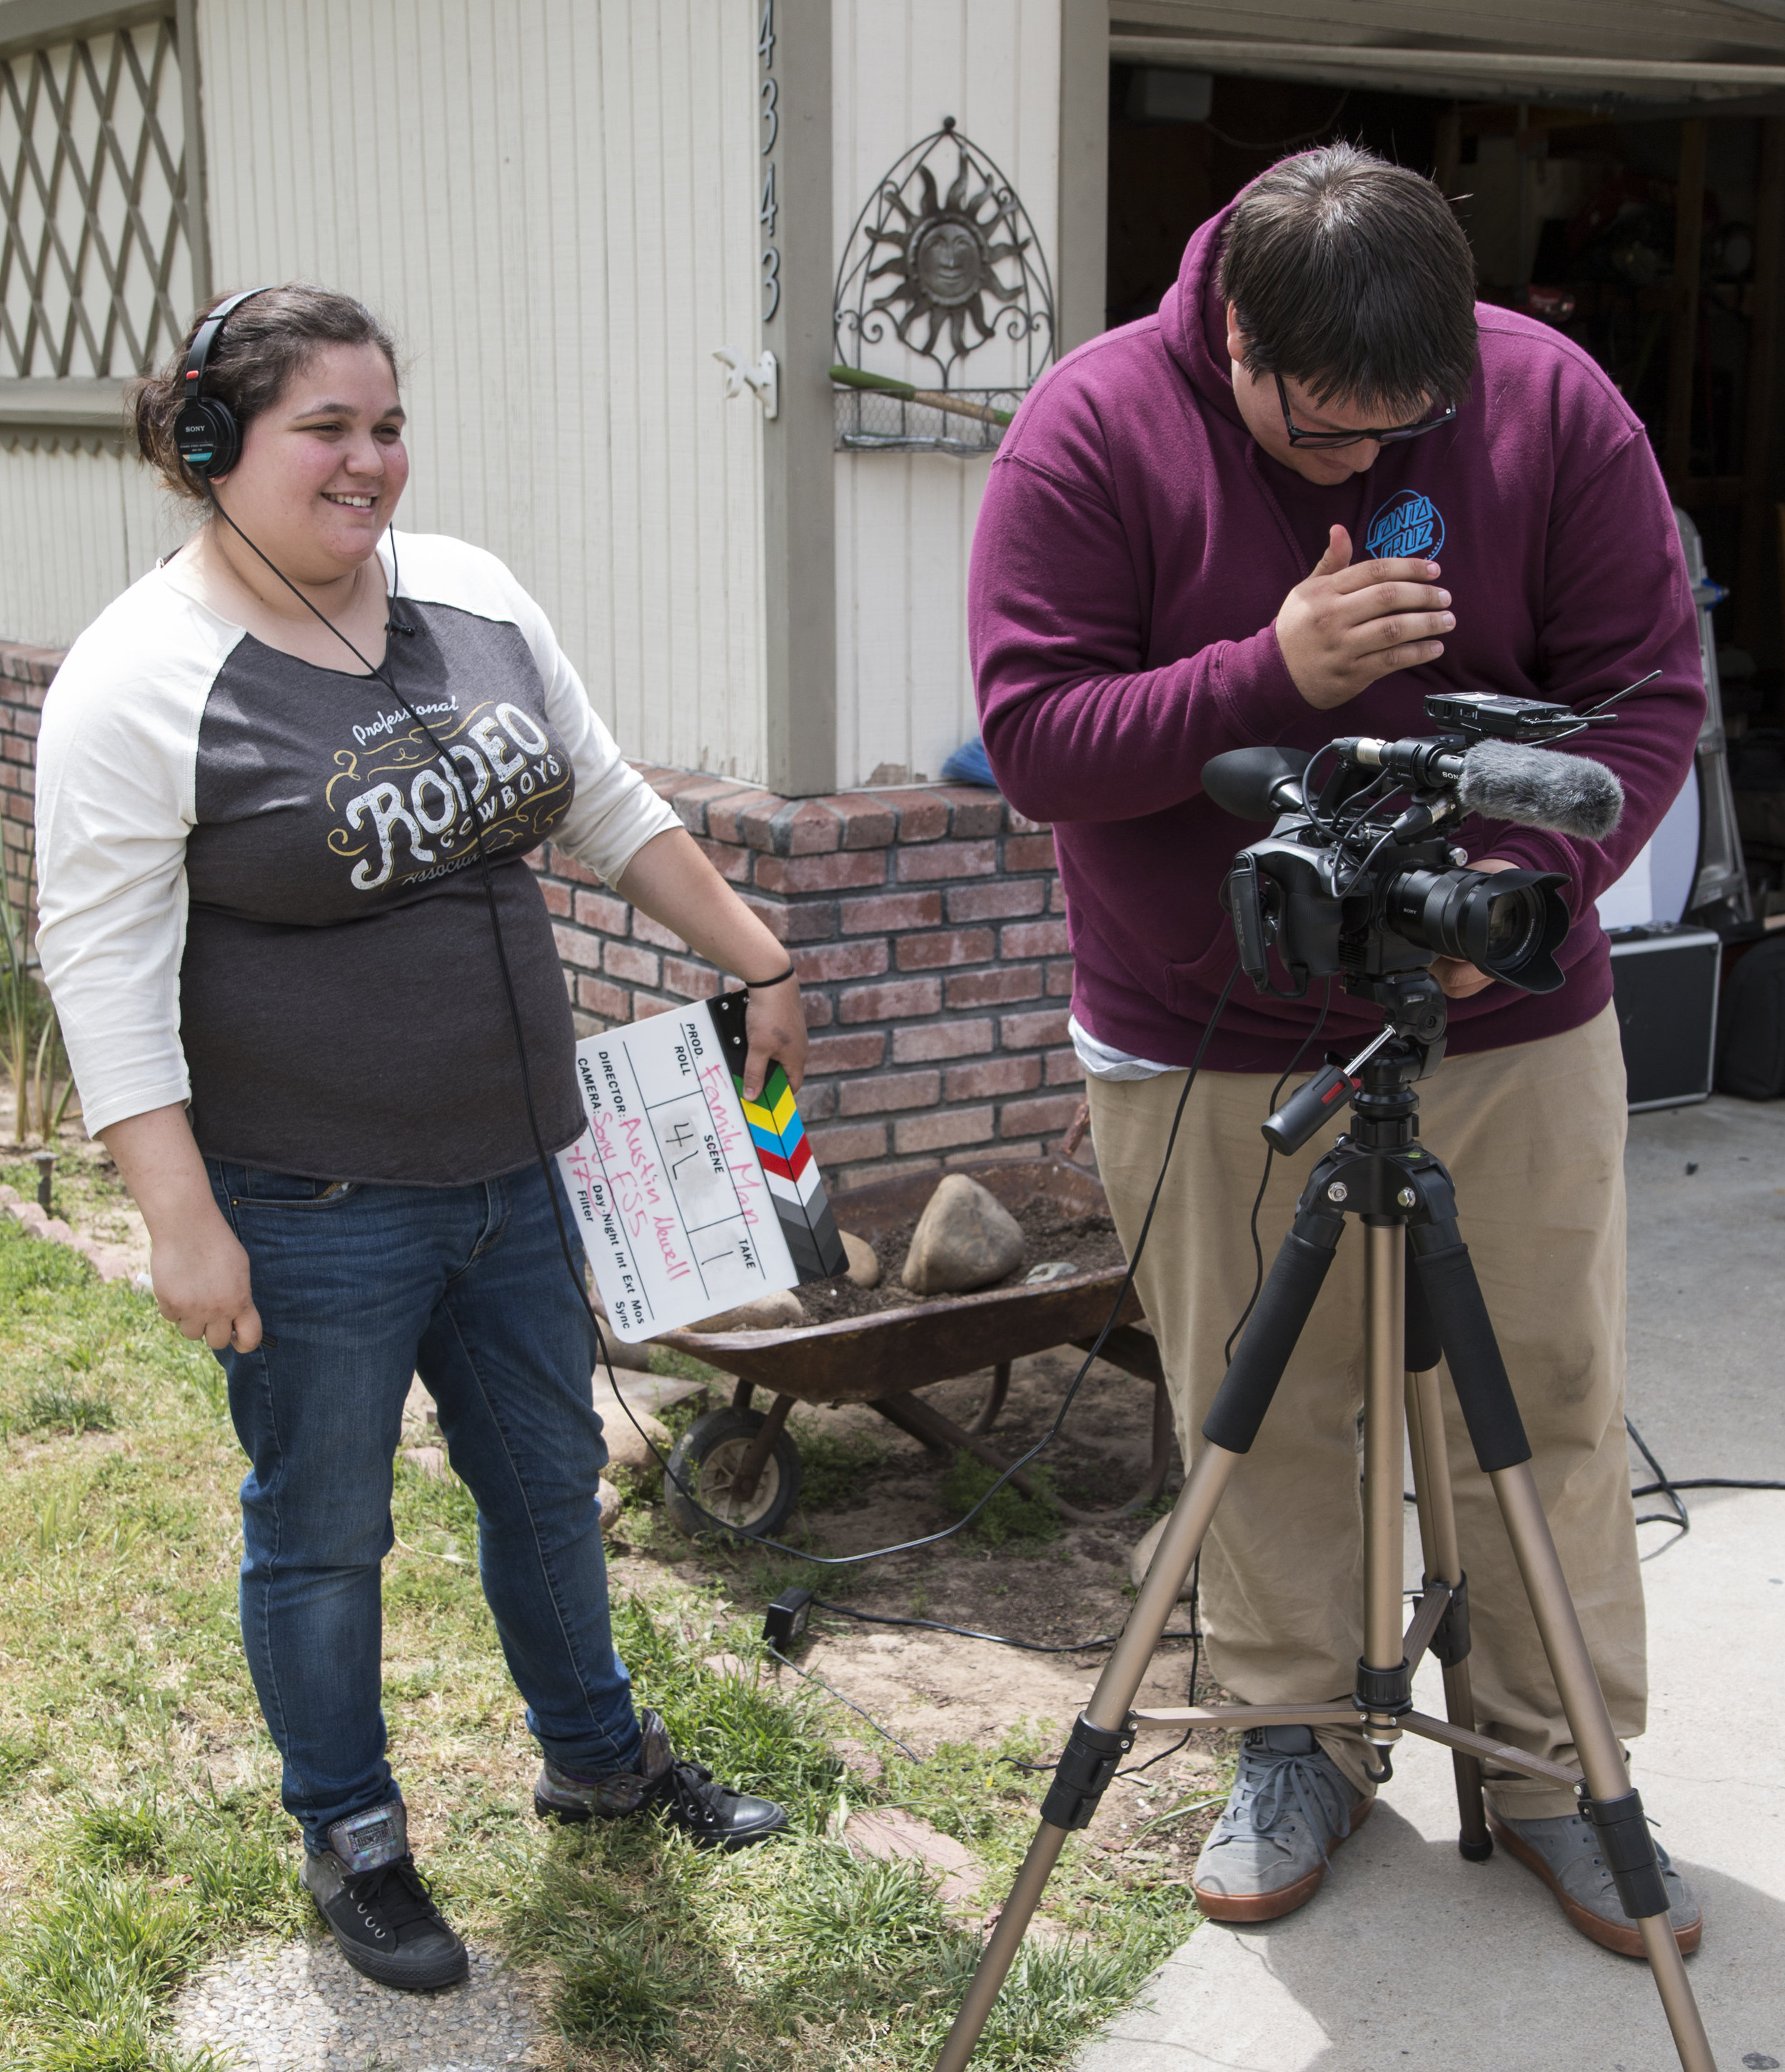 Austin and Jess with camera and clapboard.JPG